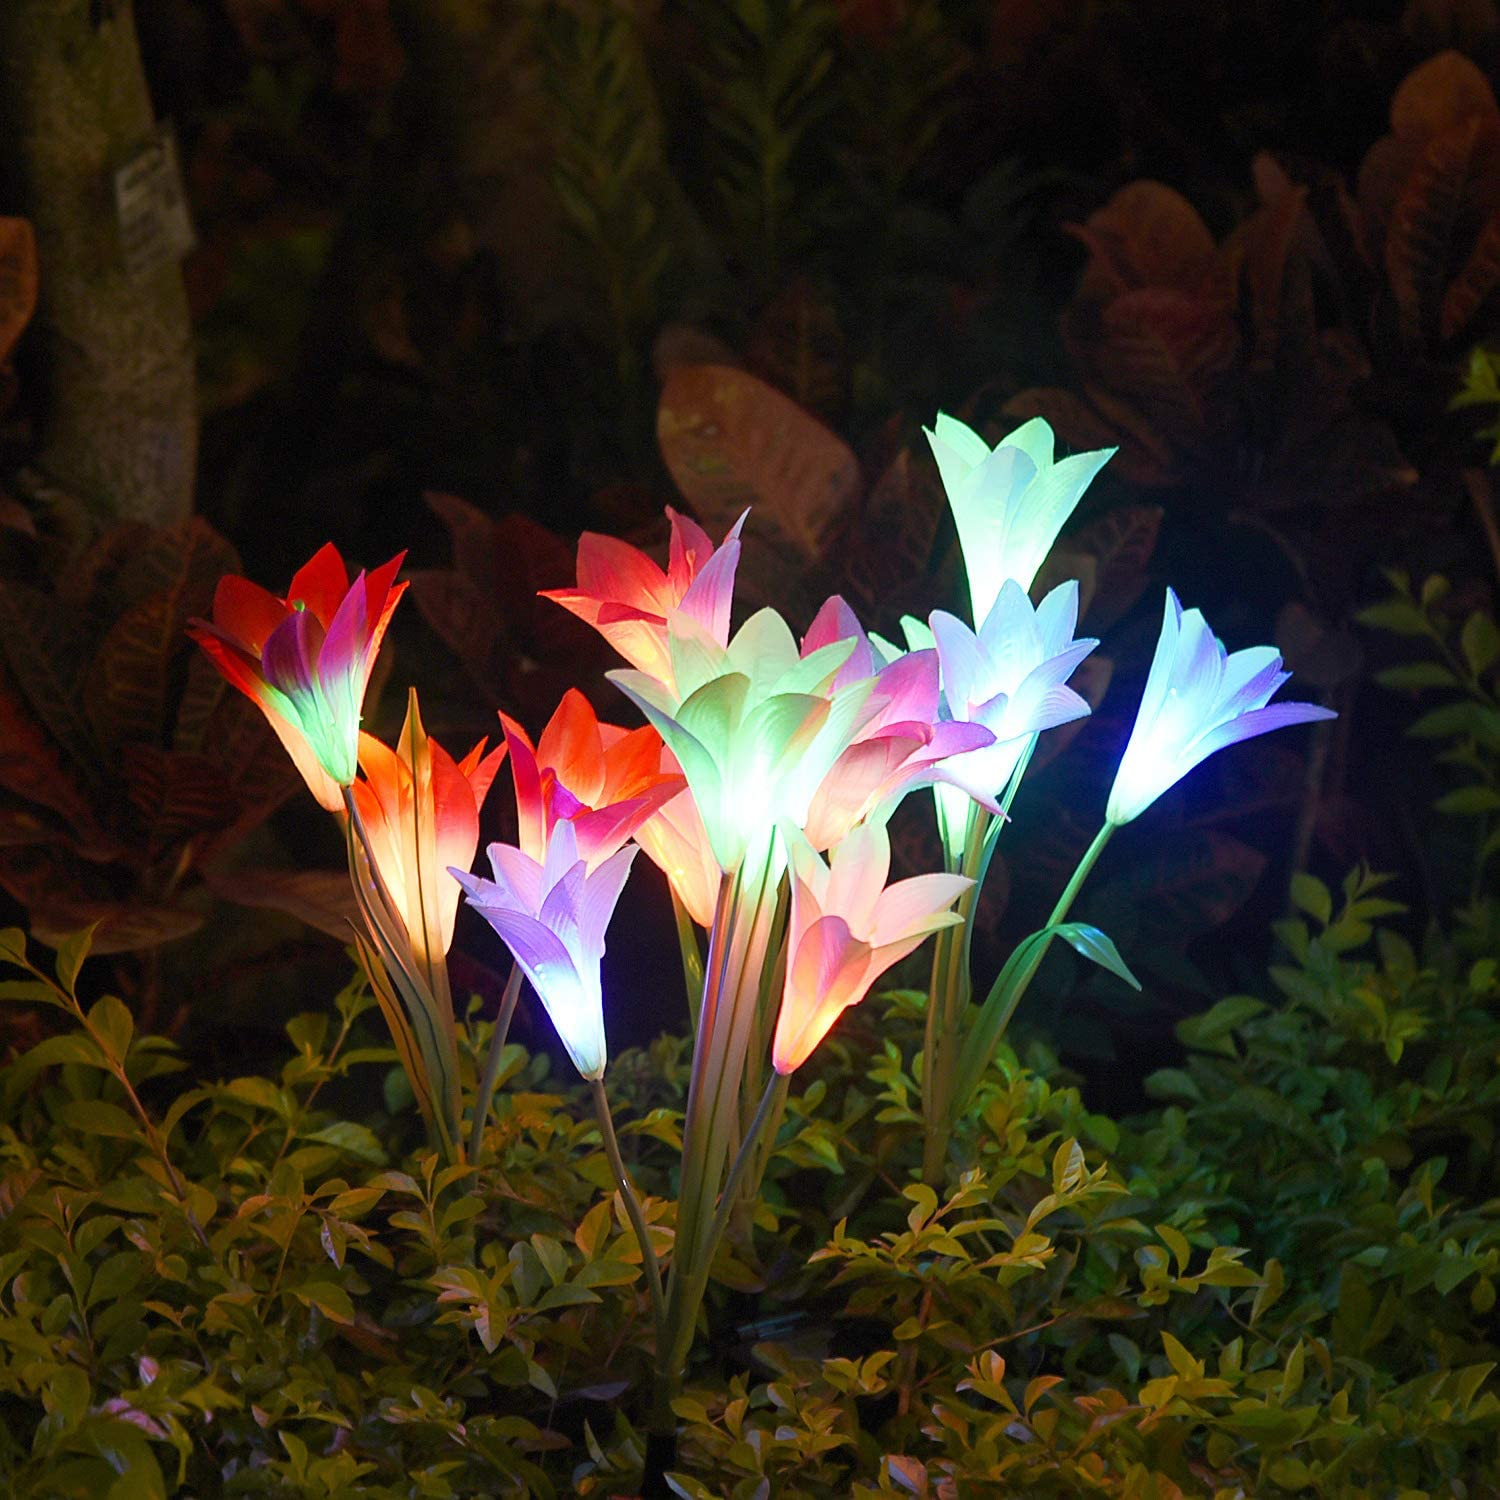 50% Off Today Only!-Spring Artificial Lily Solar Garden Stake Lights(1 Pack of 4 Lilies)